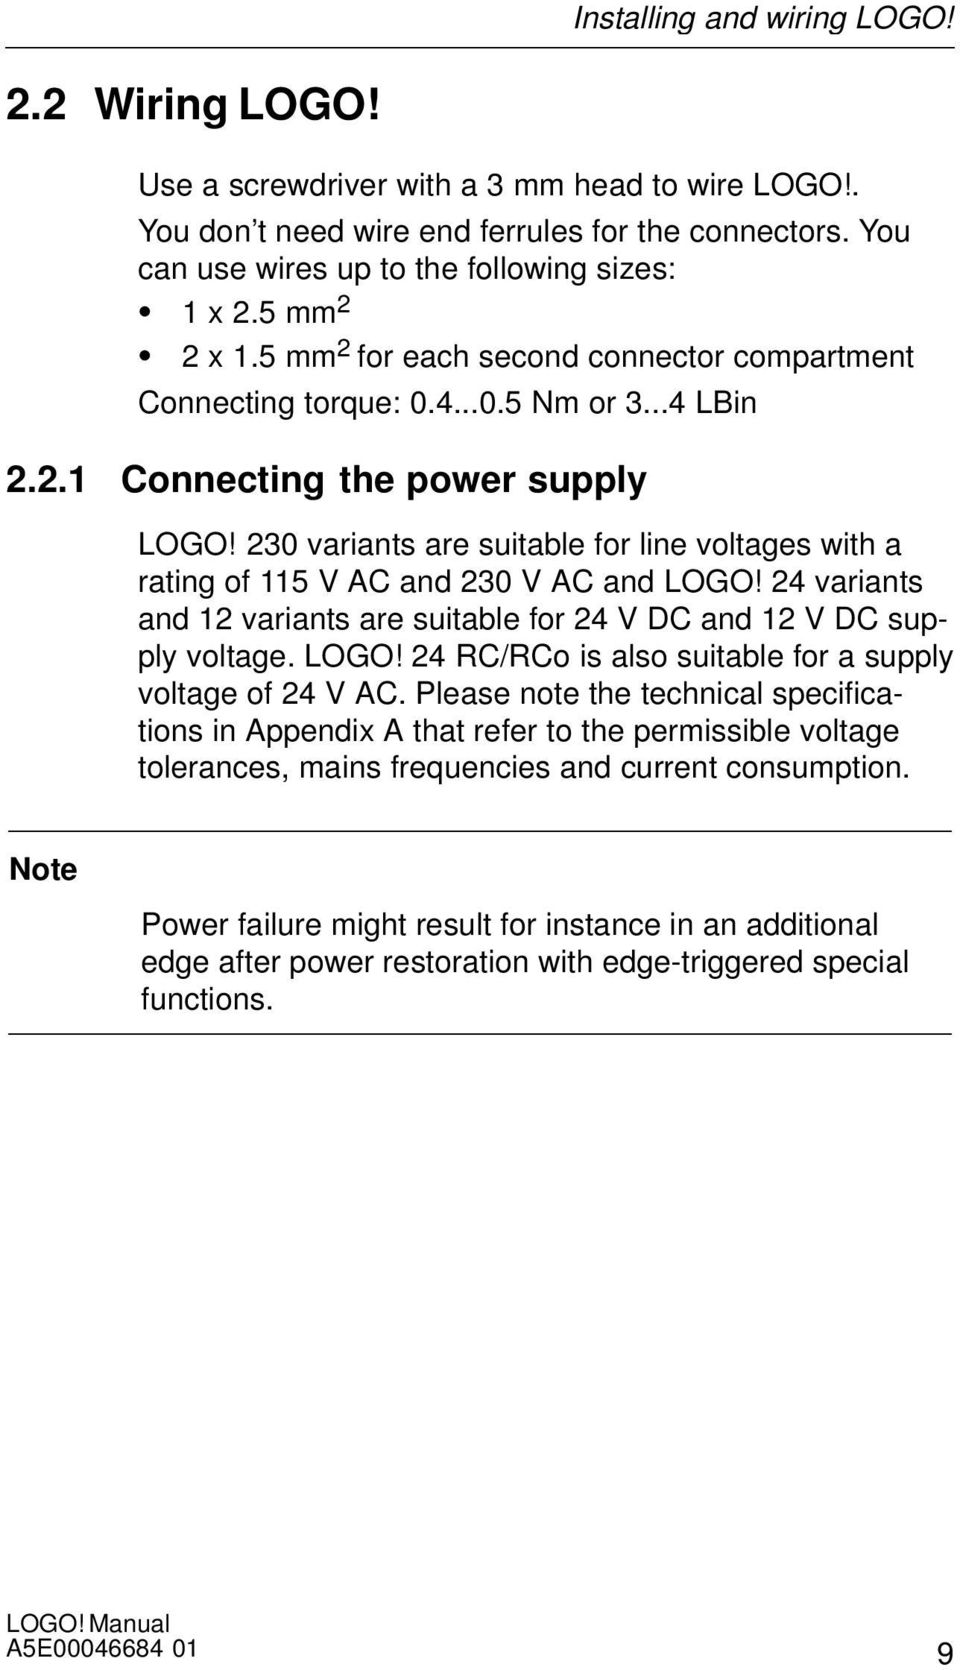 Welcome To Logo Documentation Guide The Manual Ogo Wiring Diagram 230 Variants Are Suitable For Line Voltages With A Rating Of 115 V Ac And 18 Installing